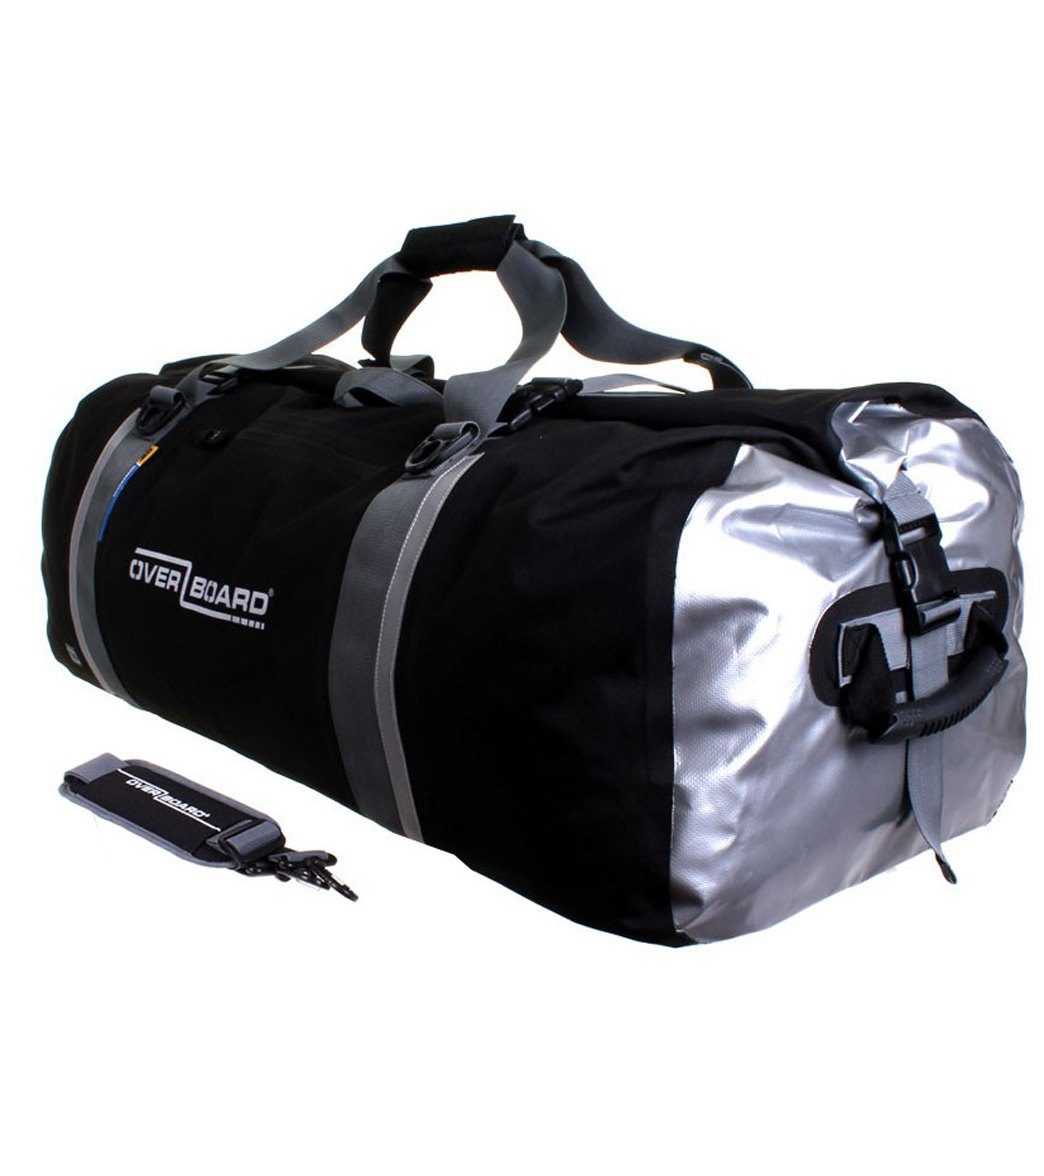 OverBoard Classic Waterproof Duffel Bag - 130 Litres at SwimOutlet.com -  Free Shipping cba6cd3163